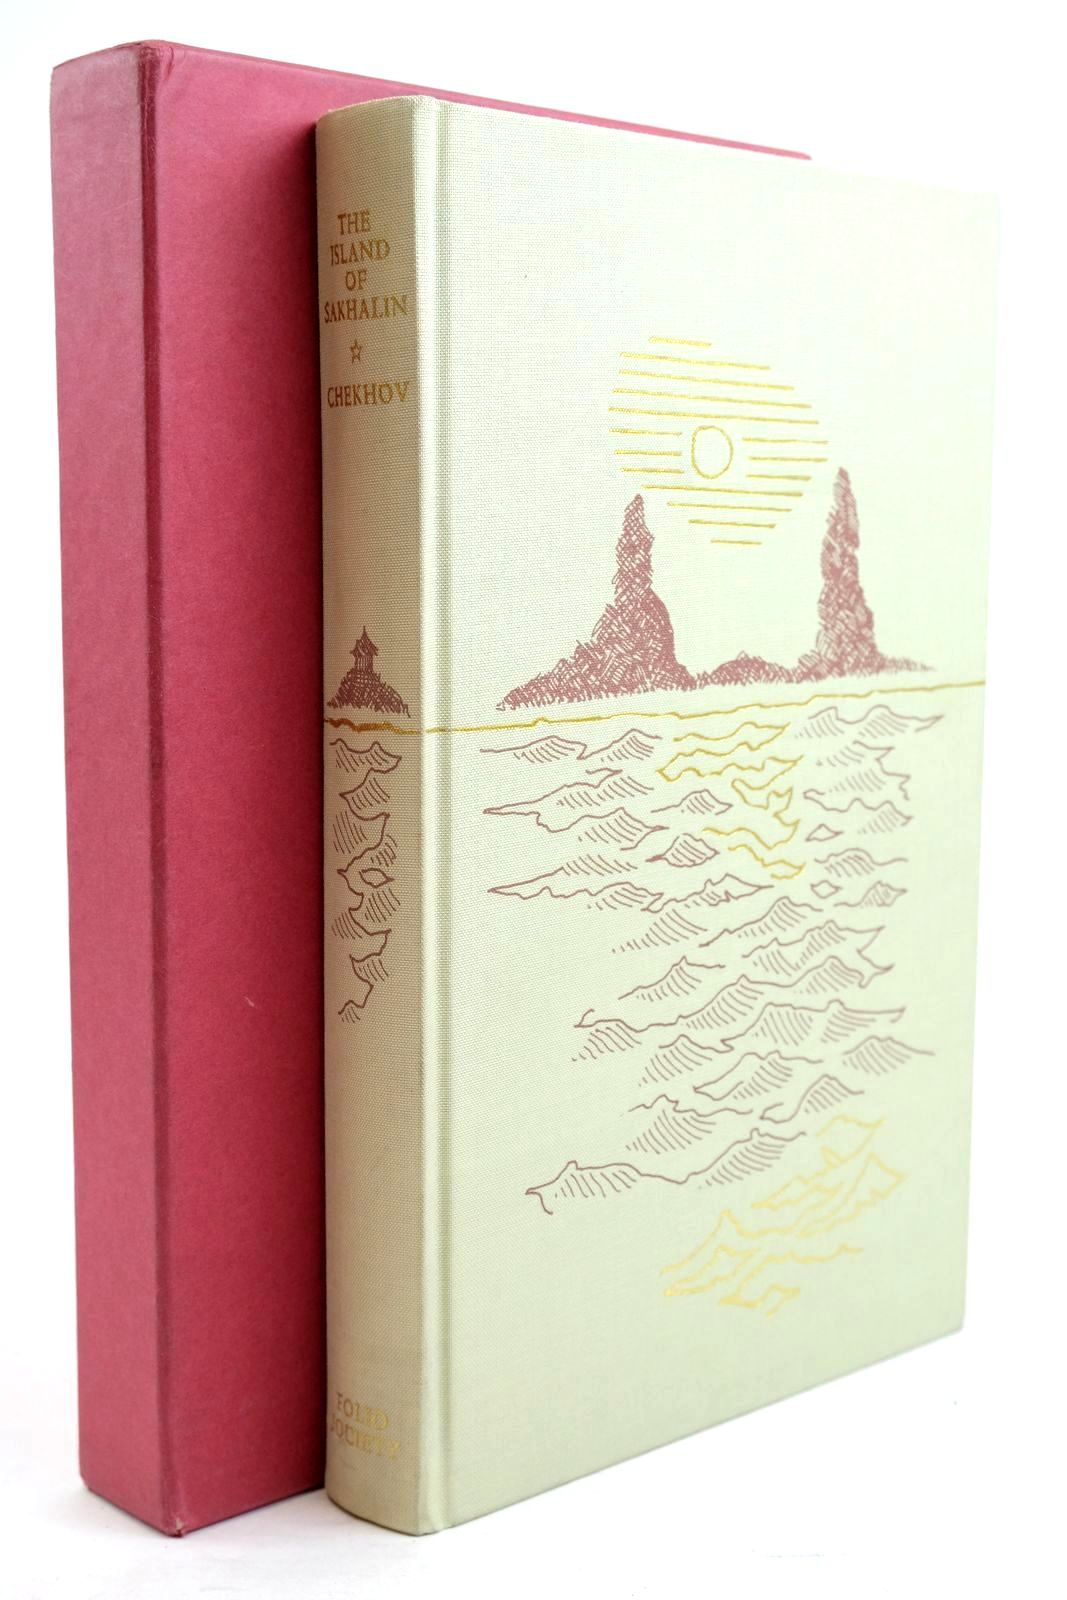 Photo of THE ISLAND OF SAKHALIN written by Chekhov, Anton published by Folio Society (STOCK CODE: 1320912)  for sale by Stella & Rose's Books